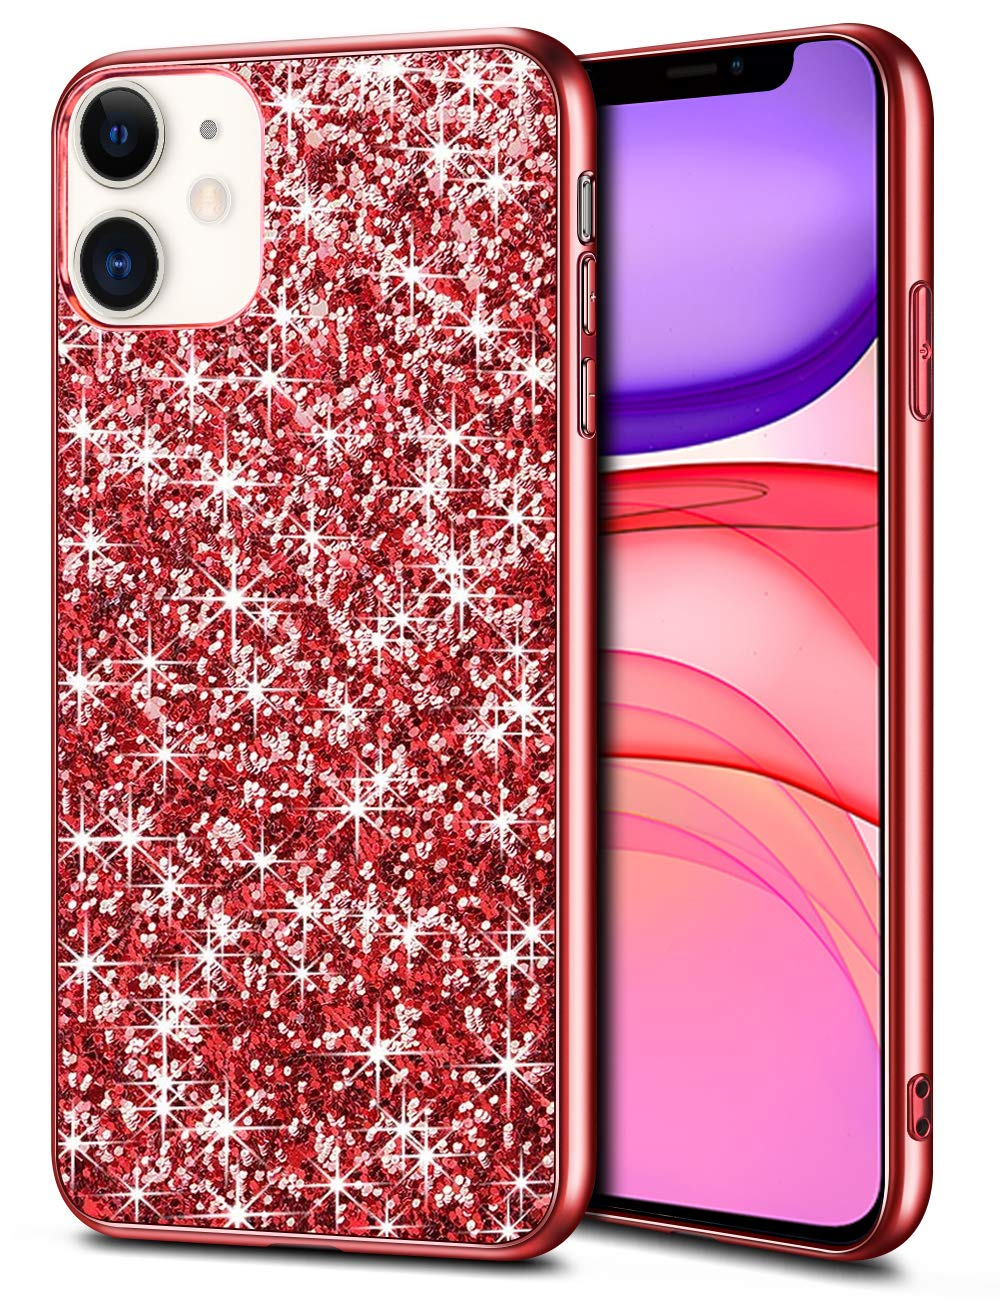 Wollony Case for iPhone 11 Case Glitter Sparkle Bling Shiny Phone Case for Girl Ultra Slim Durable Hybrid TPU Shockproof Bumper Hard Anti-Slip Back Protective Cover for iPhone 11 6.1inch Red